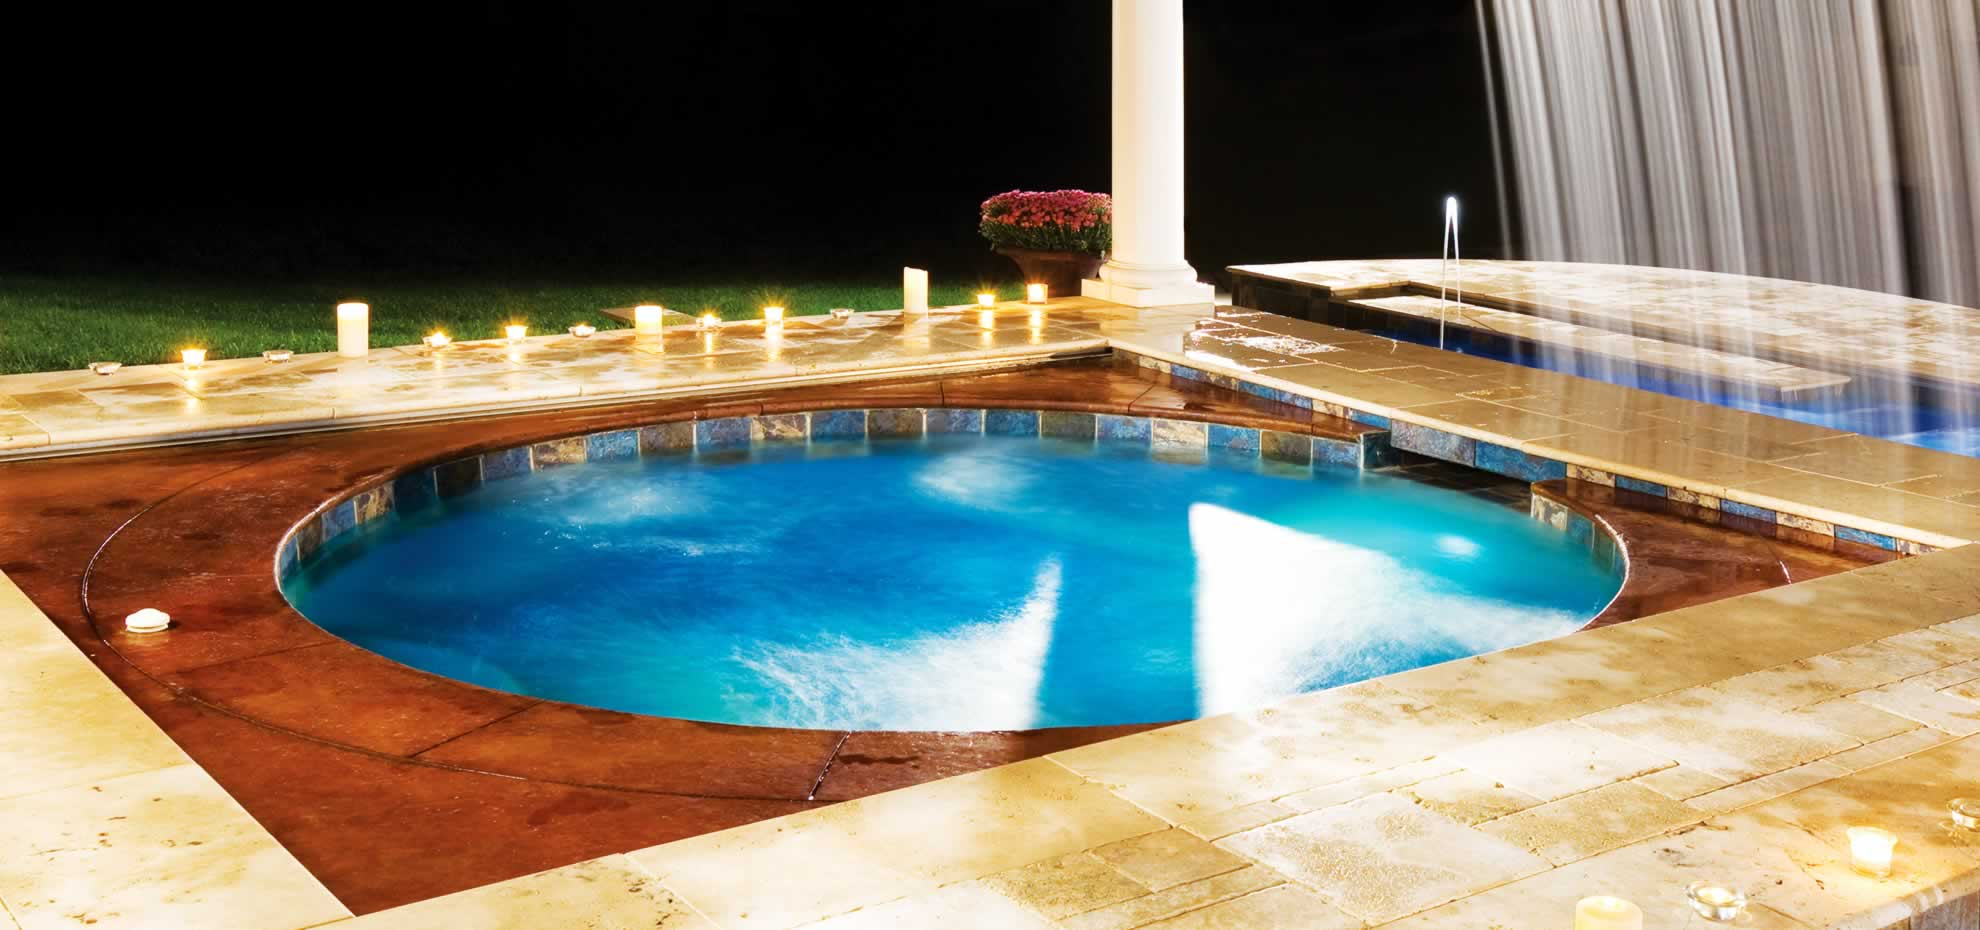 Fibreglass pool with coping and lighting by Leisure Pools